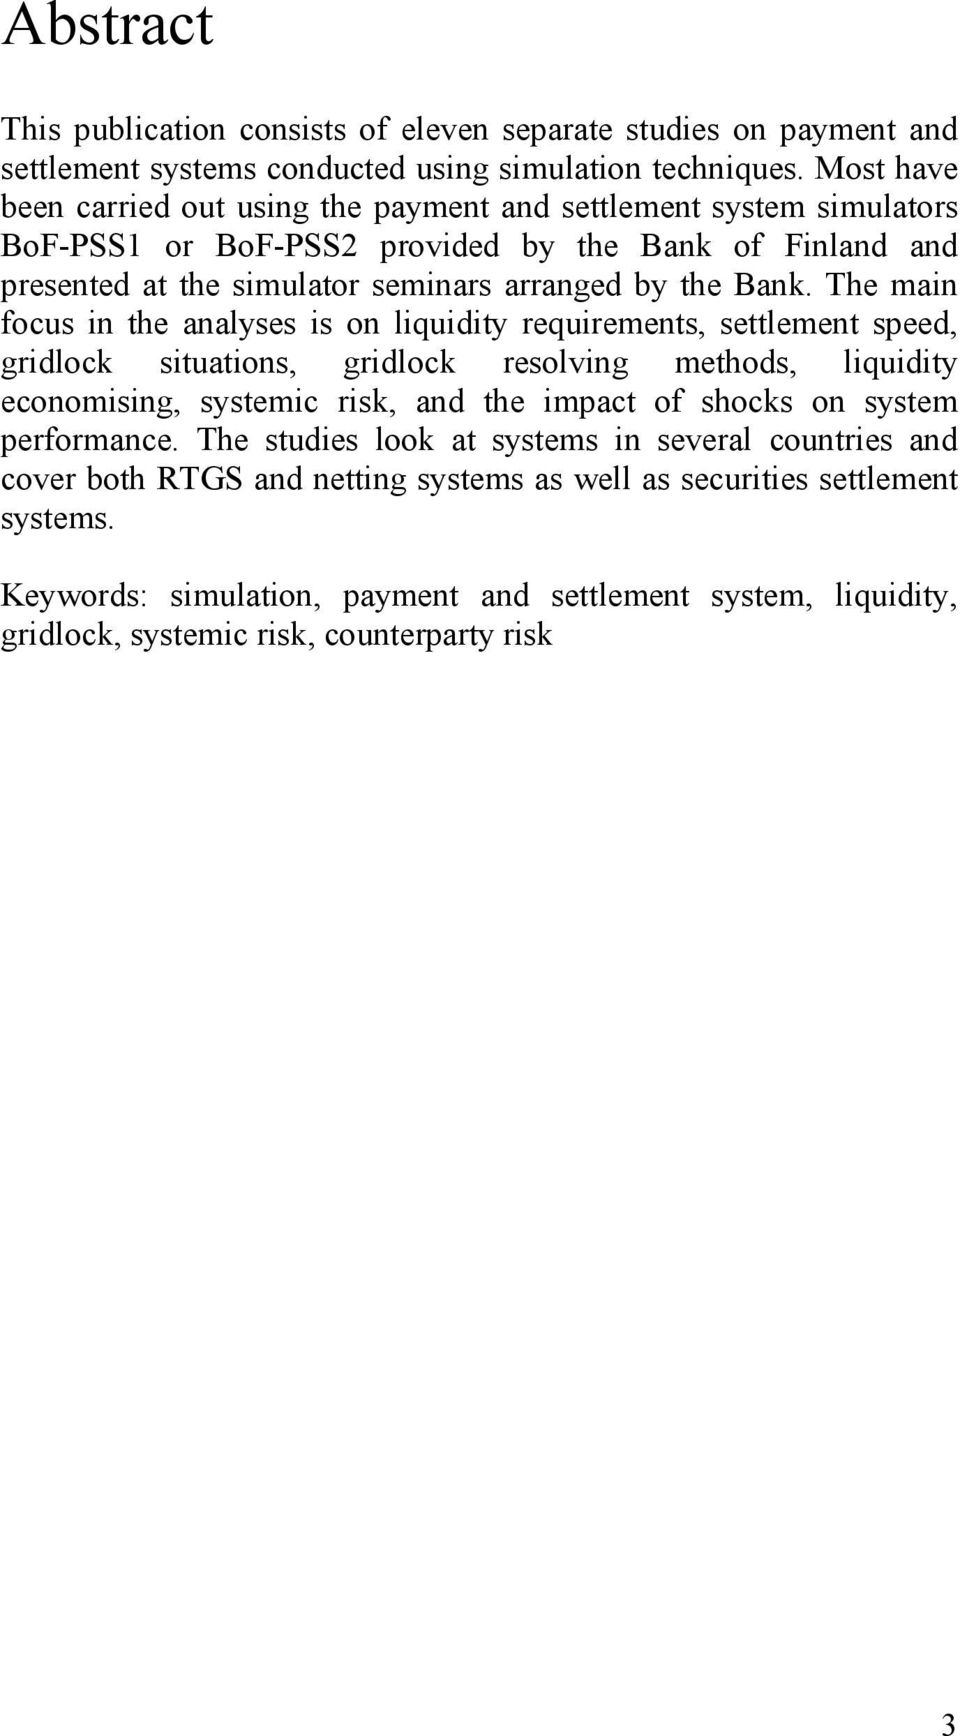 The main focus in the analyses is on liquidity requirements, settlement speed, gridlock situations, gridlock resolving methods, liquidity economising, systemic risk, and the impact of shocks on